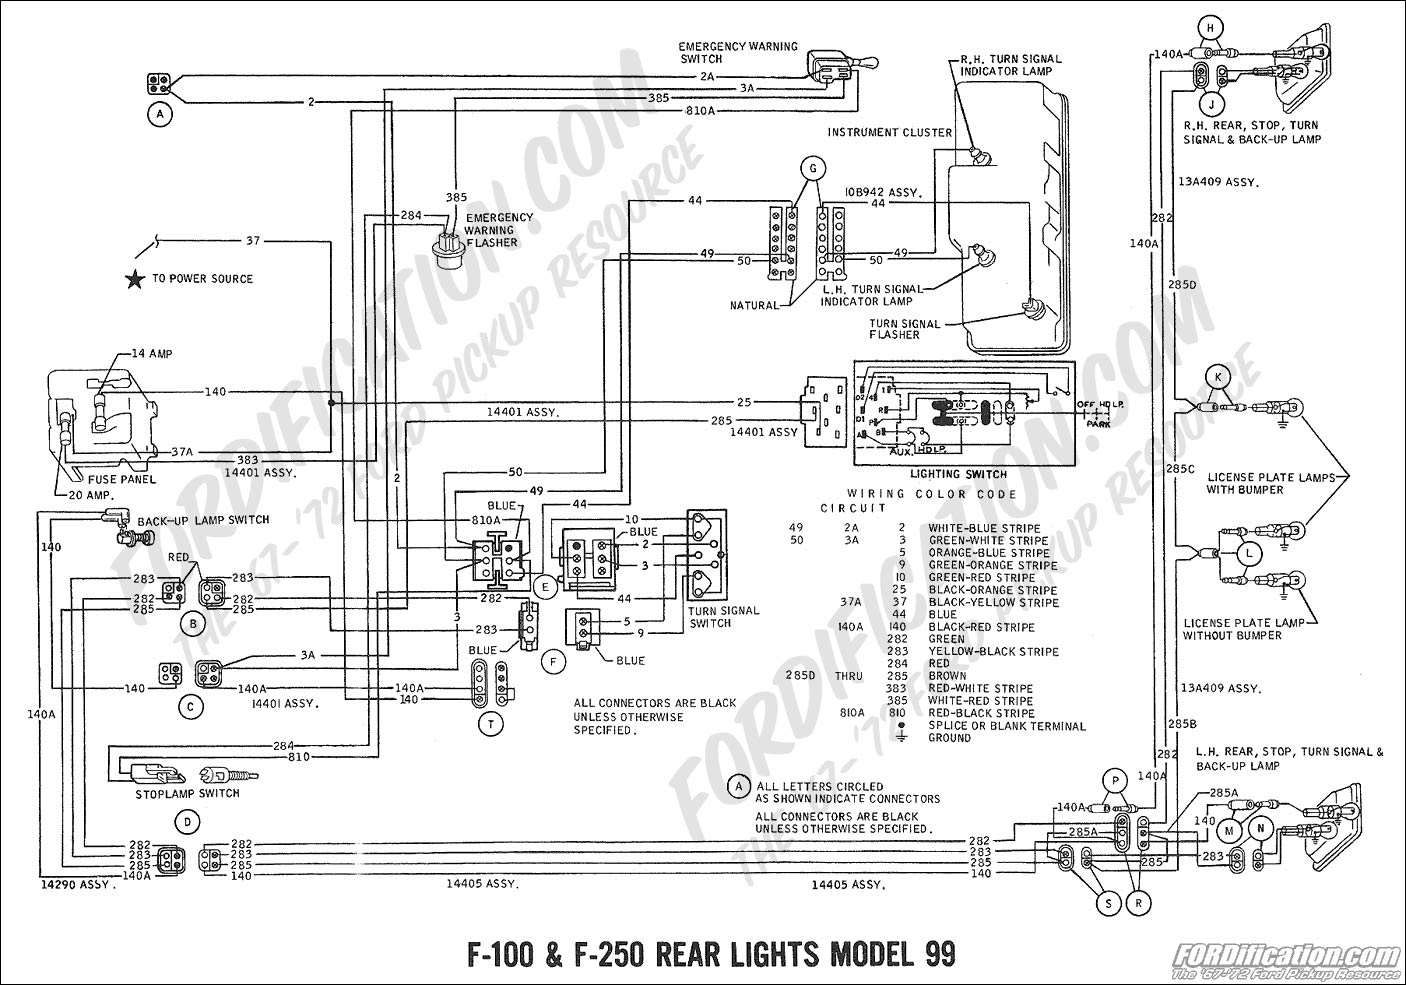 1973 Ford Mustang Turn Signal Wiring Diagram 1967 Ford